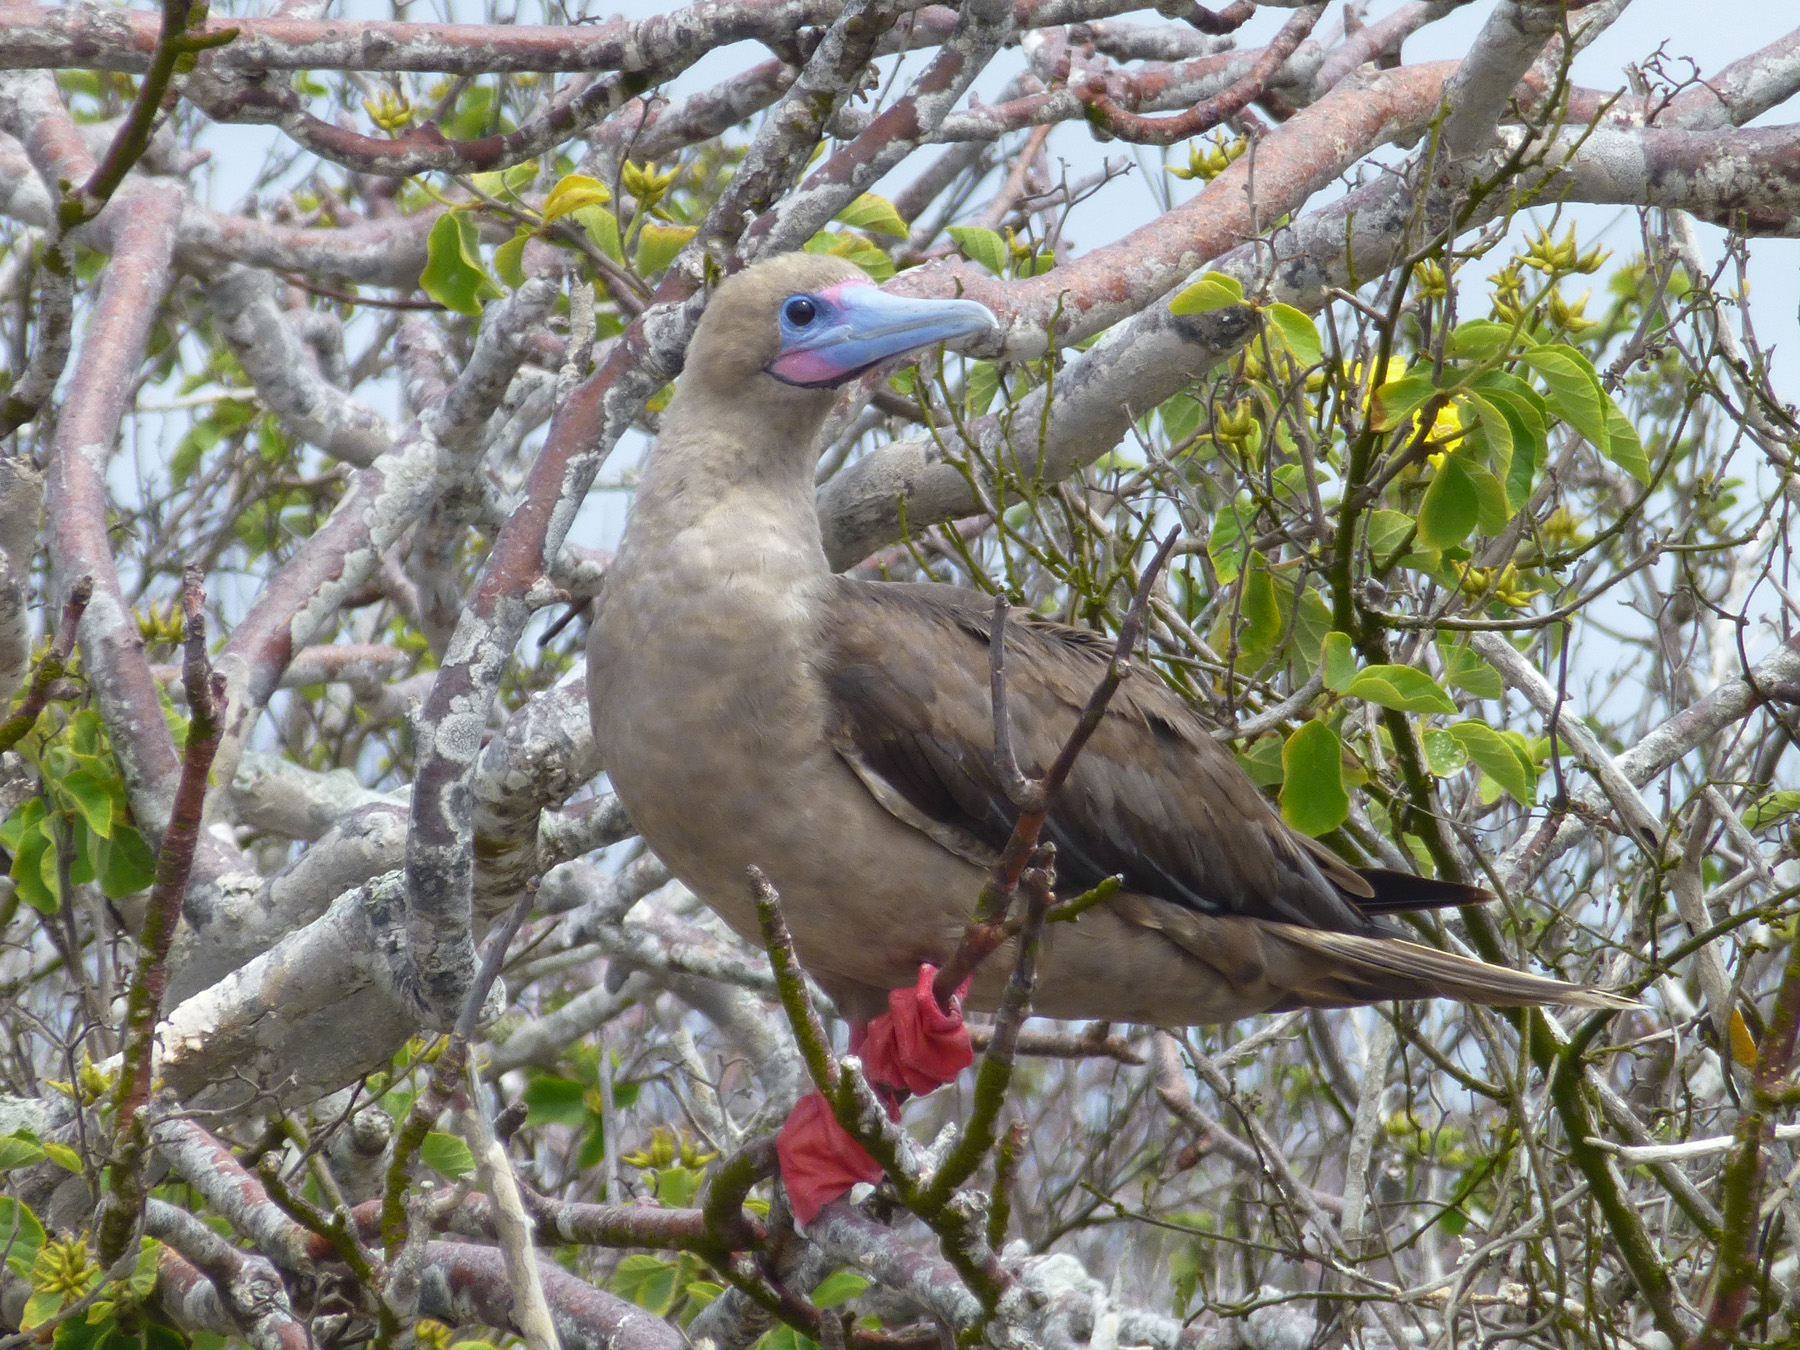 A red-footed booby on Genovesa Island.